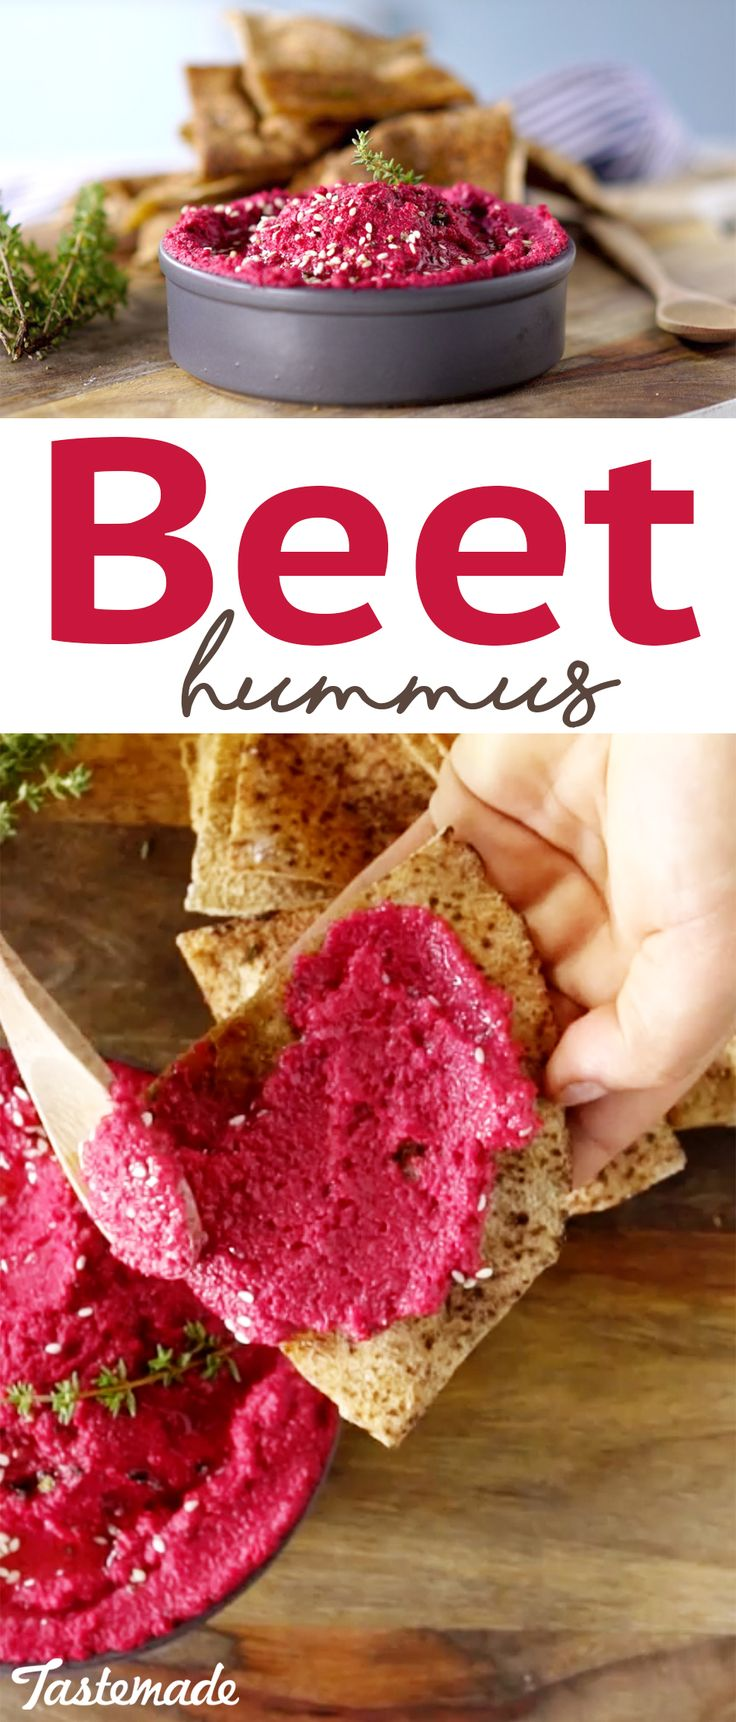 Nothing beats a beautiful, yummy dip made with sweet beets.